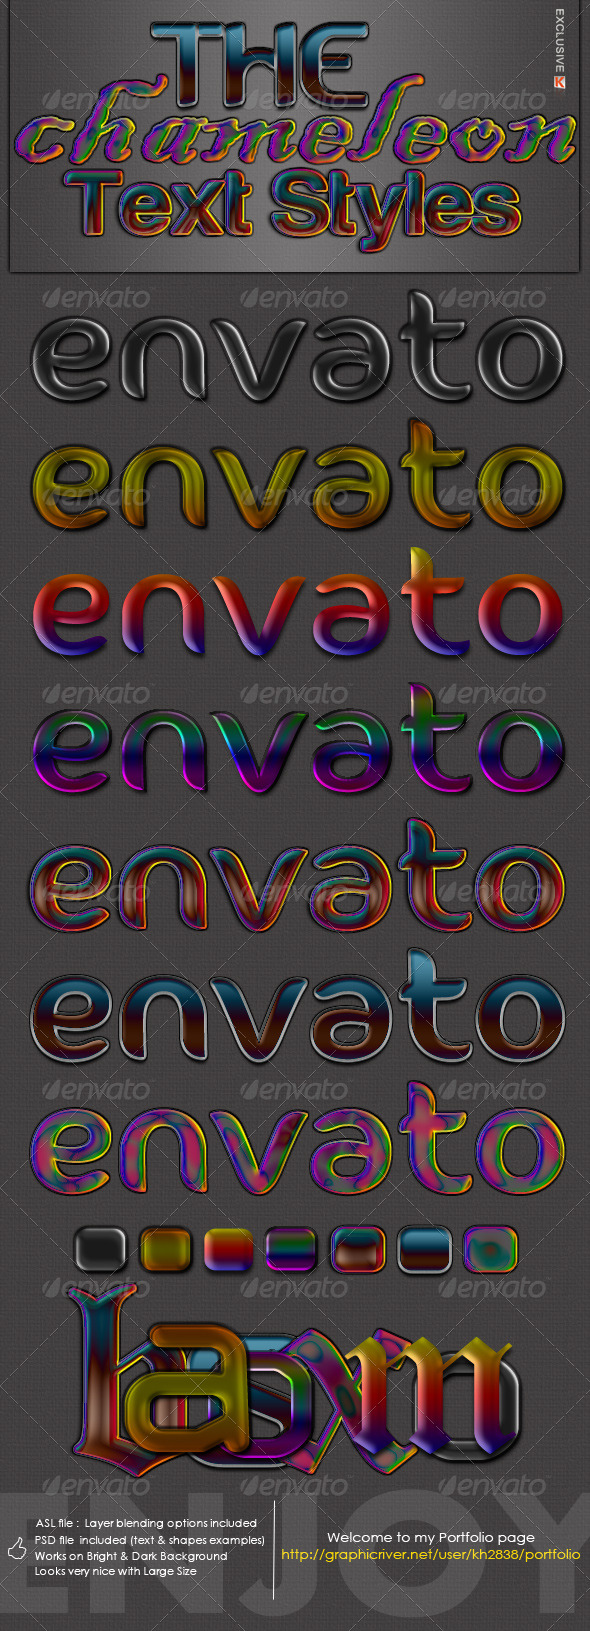 The Chameleon - Text Styles - Text Effects Styles